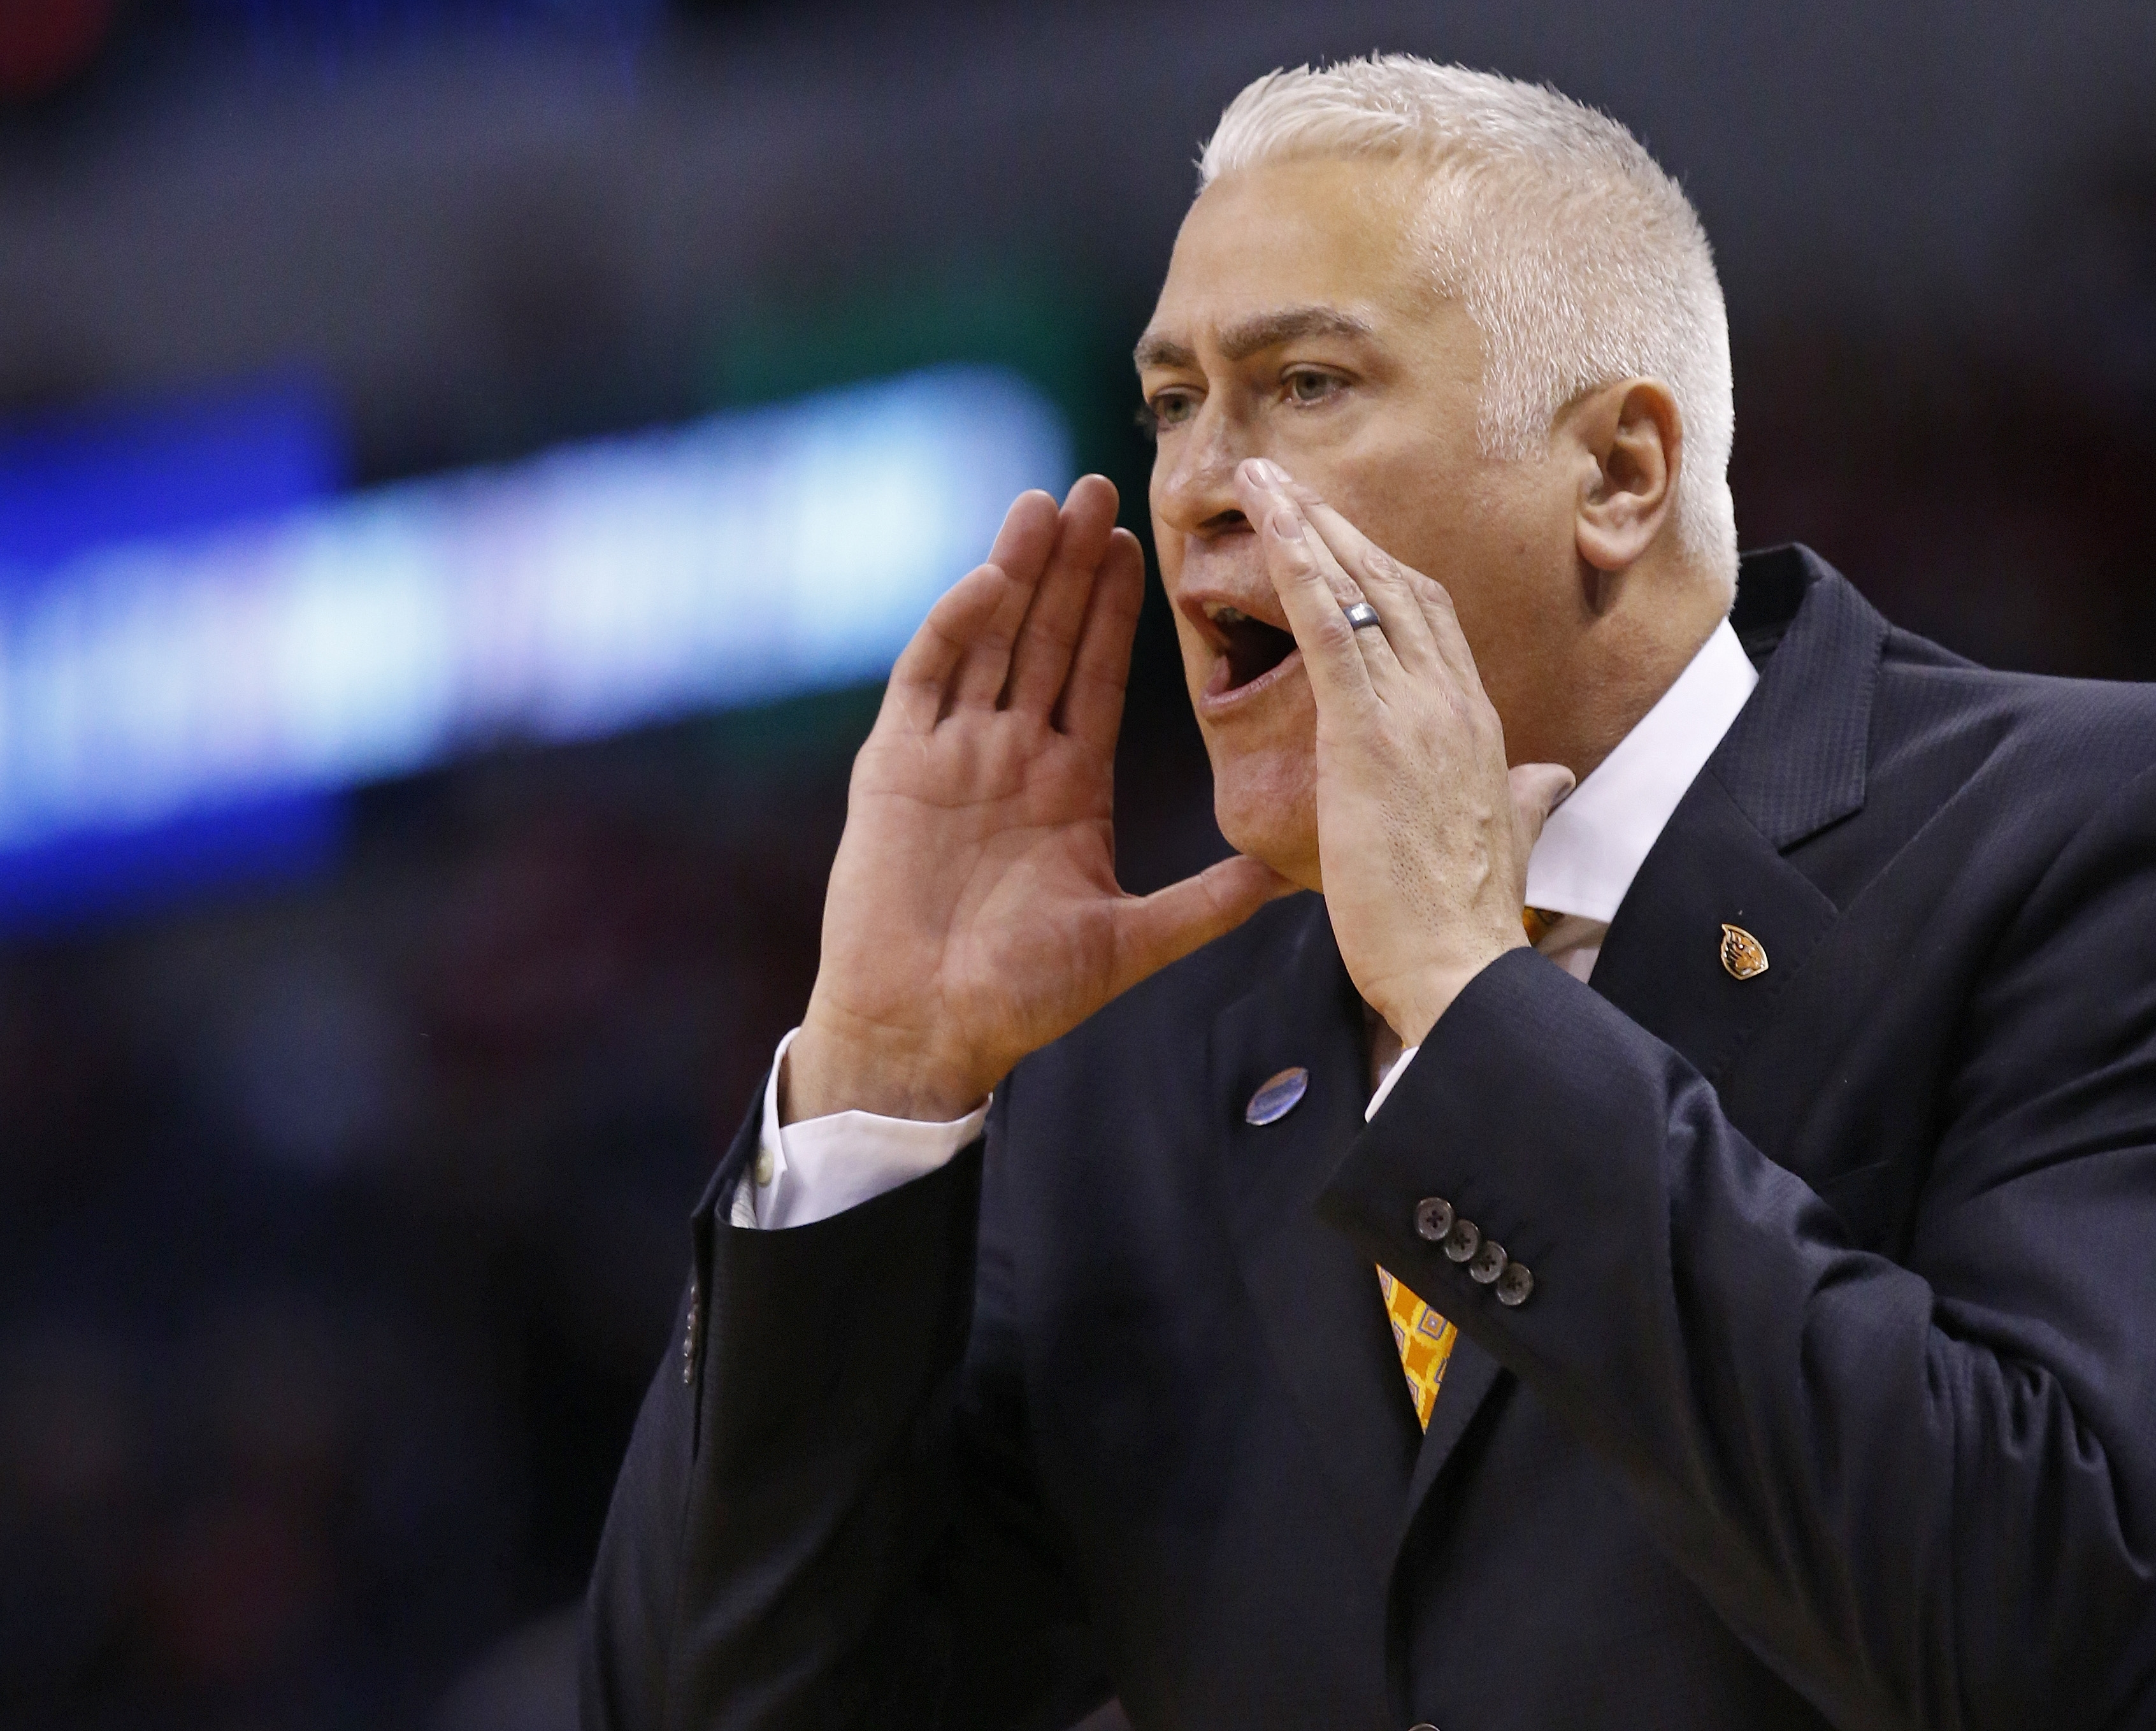 Oregon State head coach Wayne Tinkle shouts to his team in the first half of a first-round men's college basketball game against Virginia Commonwealth in the NCAA Tournament, Friday, March 18, 2016, in Oklahoma City. (AP Photo/Sue Ogrocki)